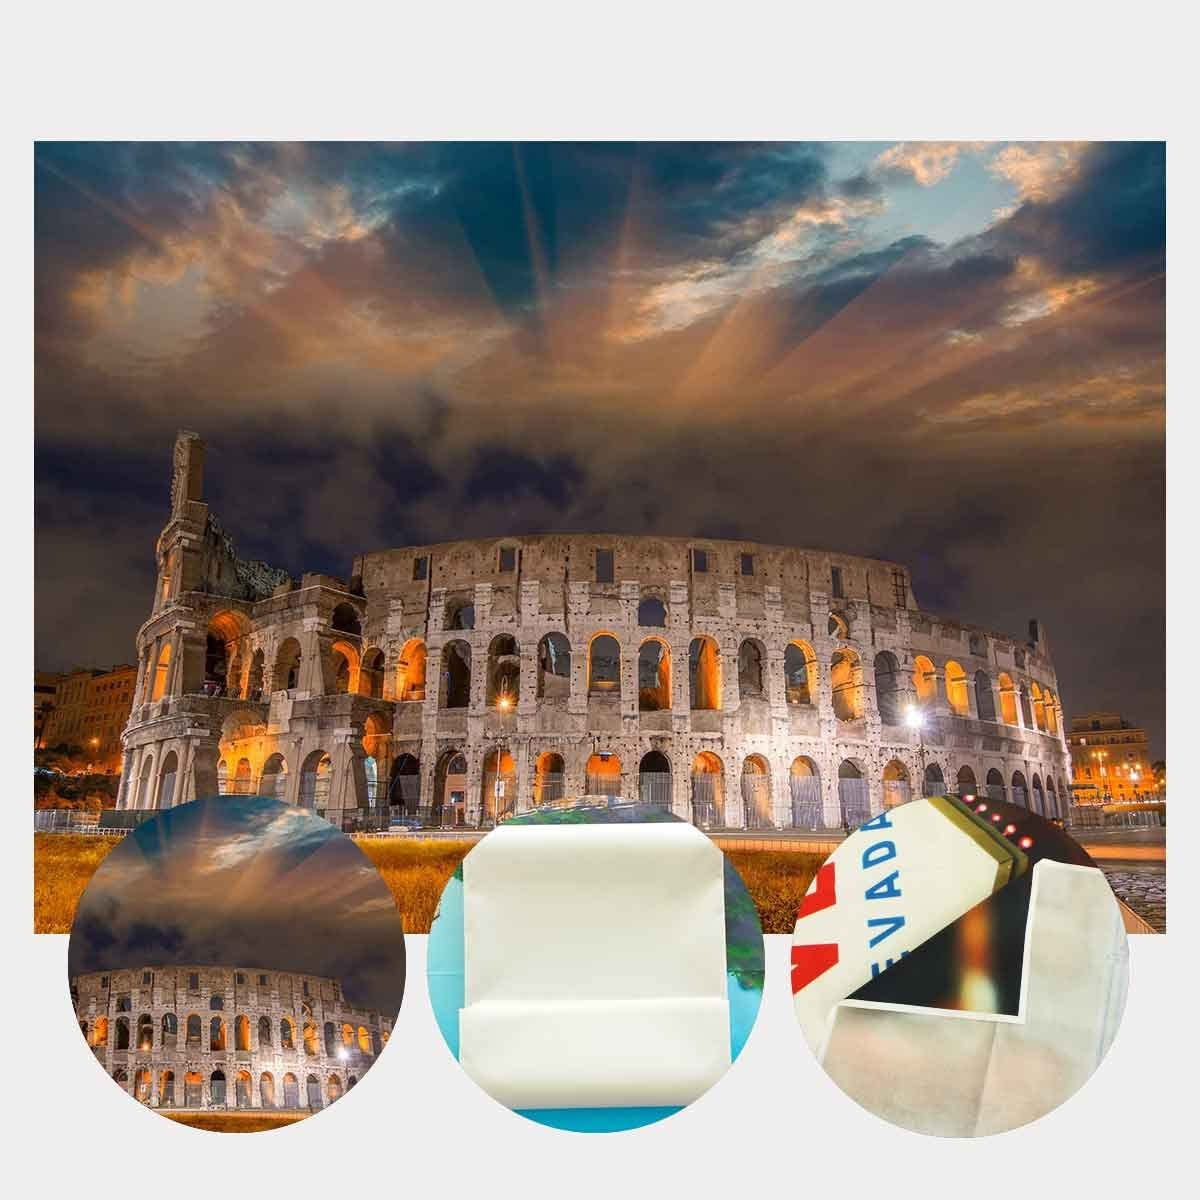 LYLYCTY 7x5ft Ancient Architecture Backdrop Bright Colosseum Night Scene Photography Backdrop Photo Photography Background Props Studio Display Mural LYLX474